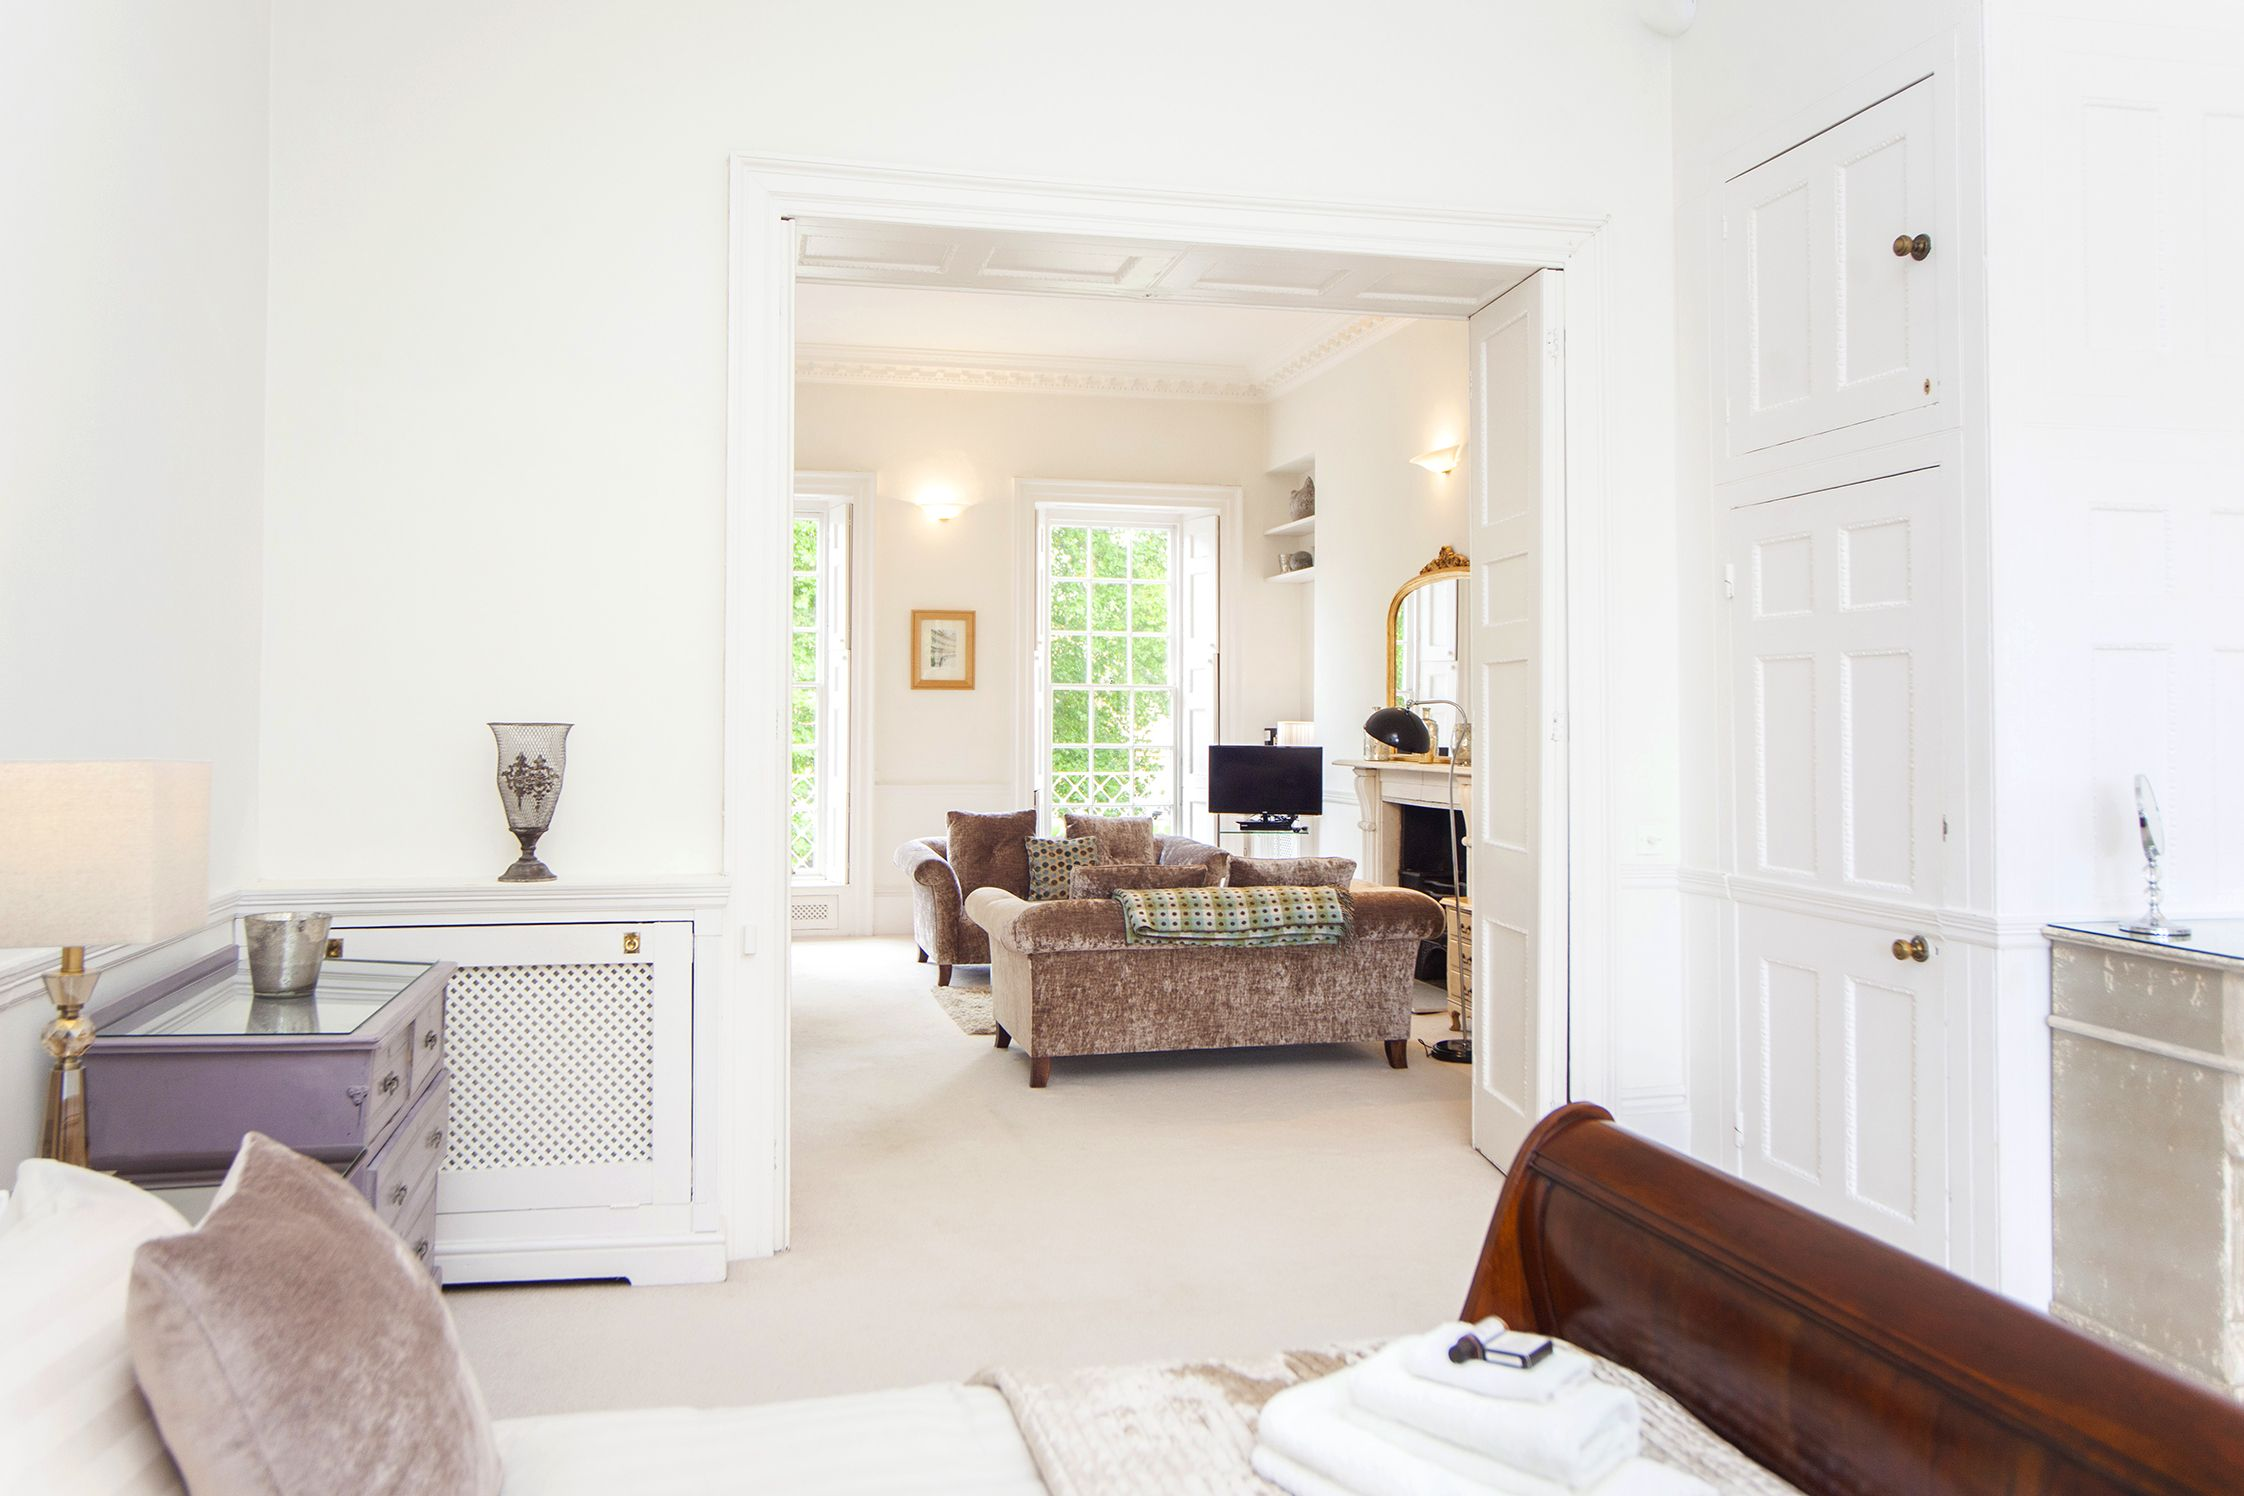 King\'s Circus Bath Holiday Apartment | Self Catering Property